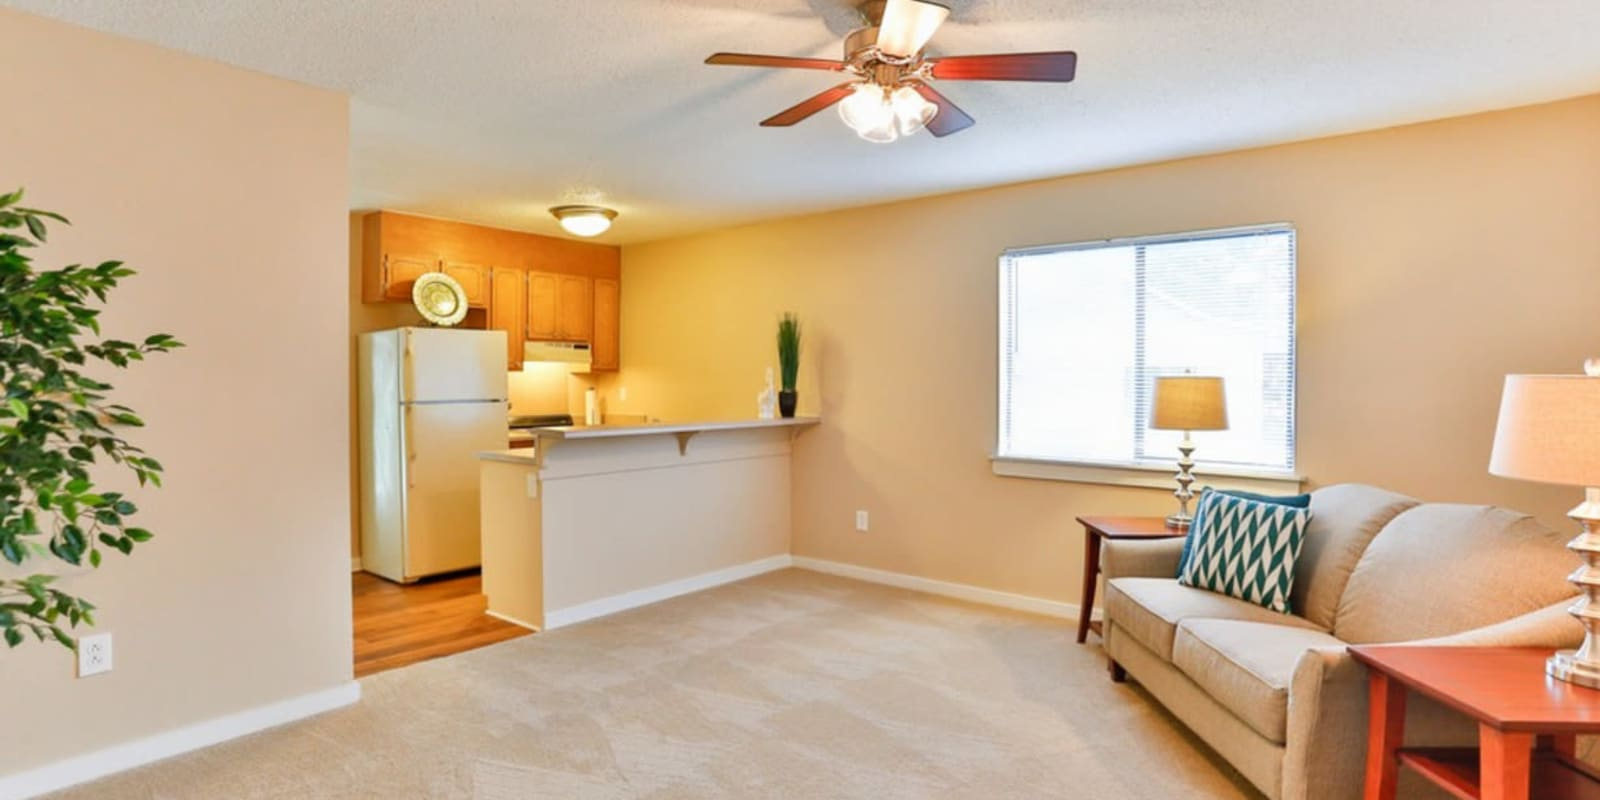 Spacious living room with a ceiling fan at Huntersville Apartment Homes in Huntersville, North Carolina